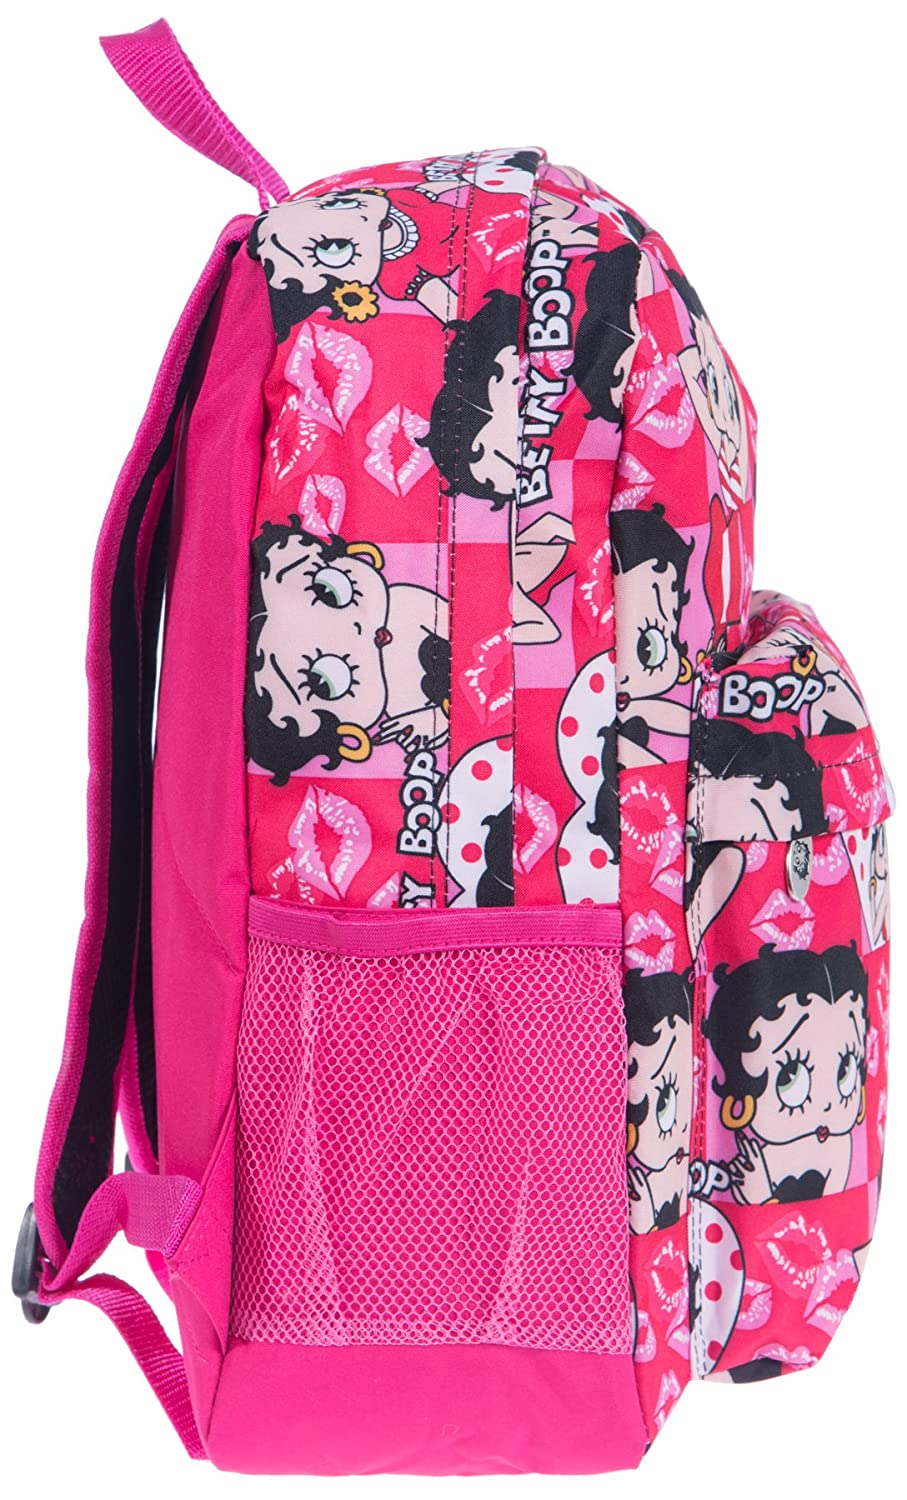 Betty Boop canvas school Backpack Pink face book sport pockets